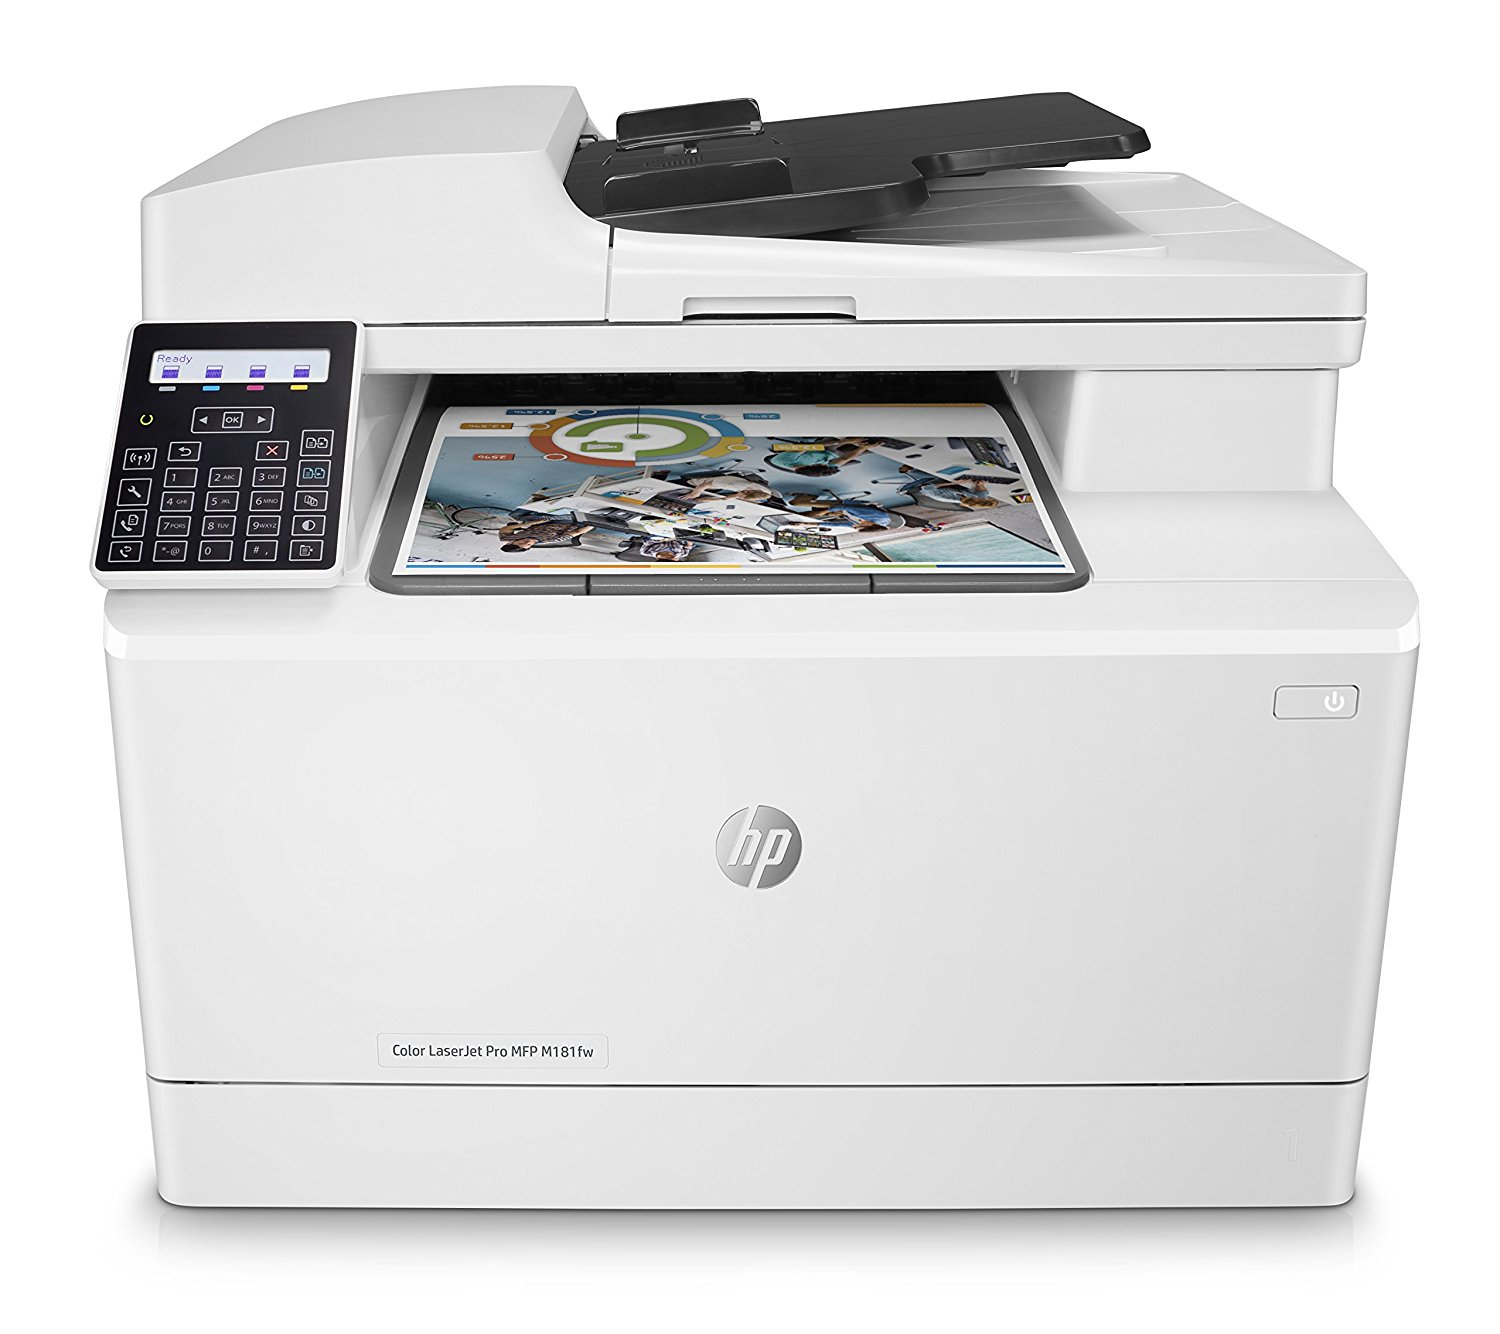 Multifunctional Laser Color HP LaserJet Pro MFP M181fw